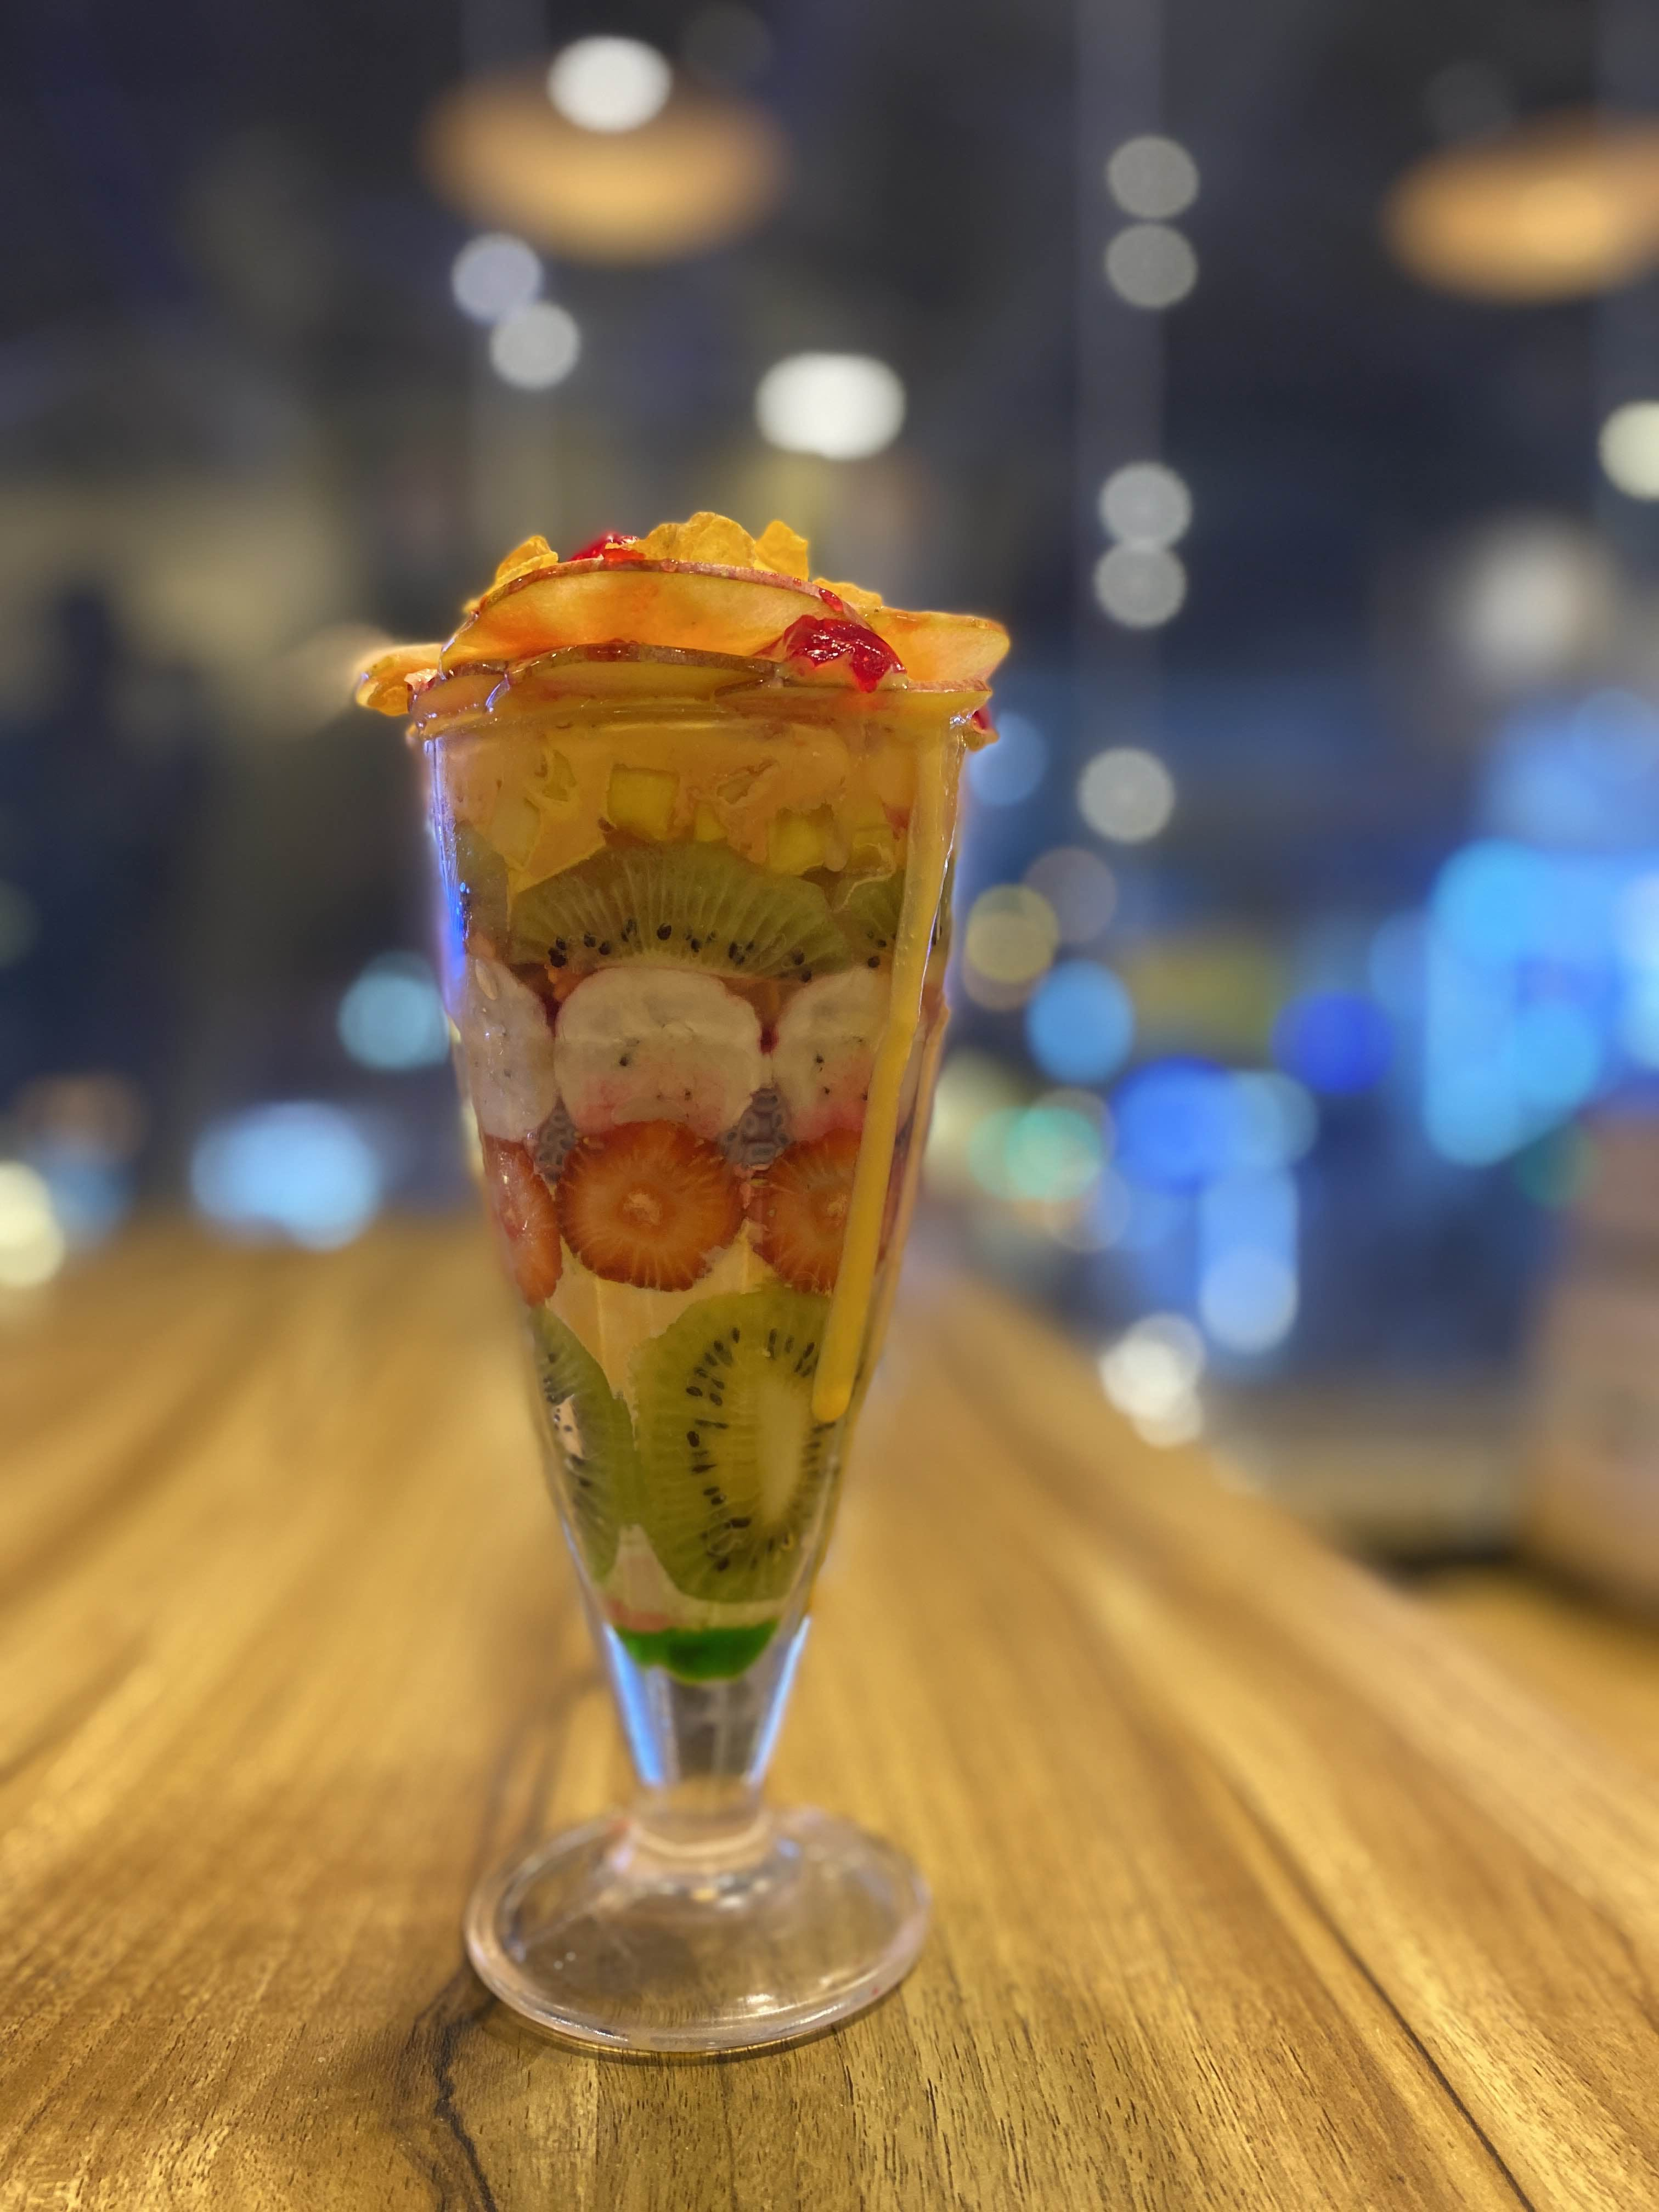 This Outlet Offers A Variety Of Falooda, Sundaes & More!